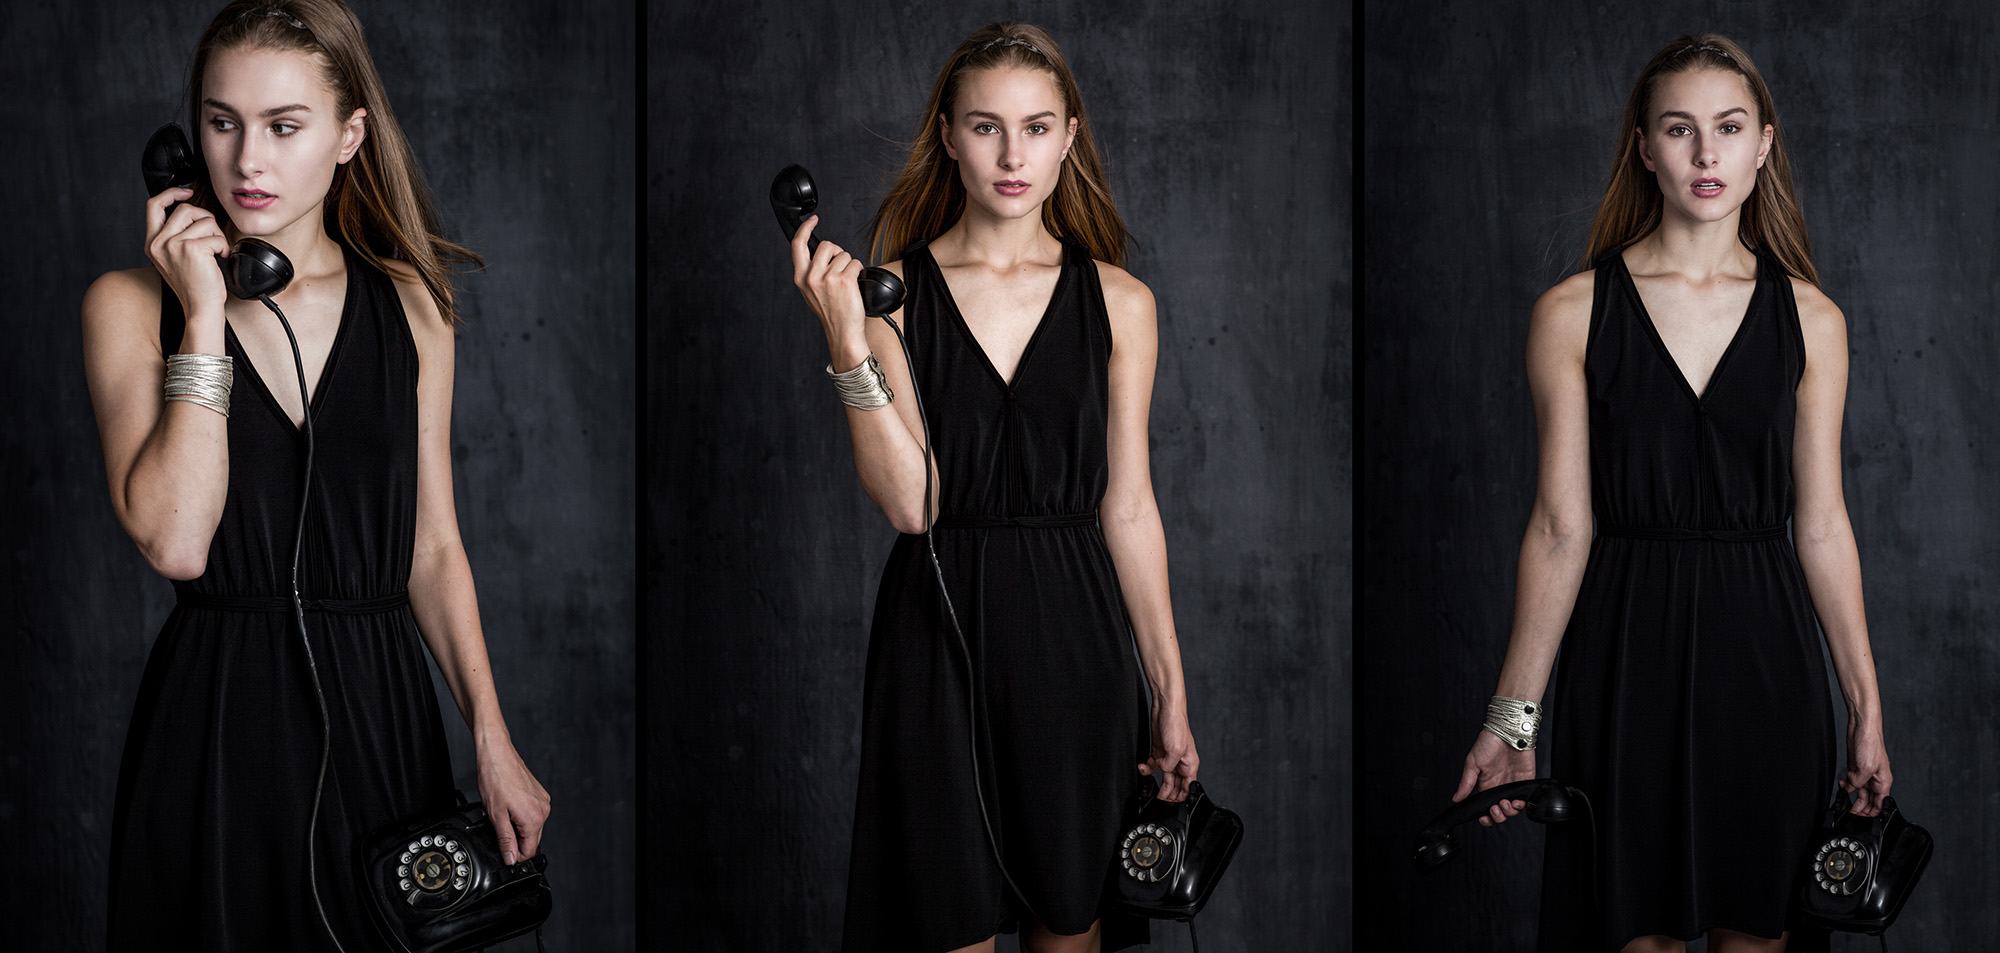 Andrea in the black dress with the phone